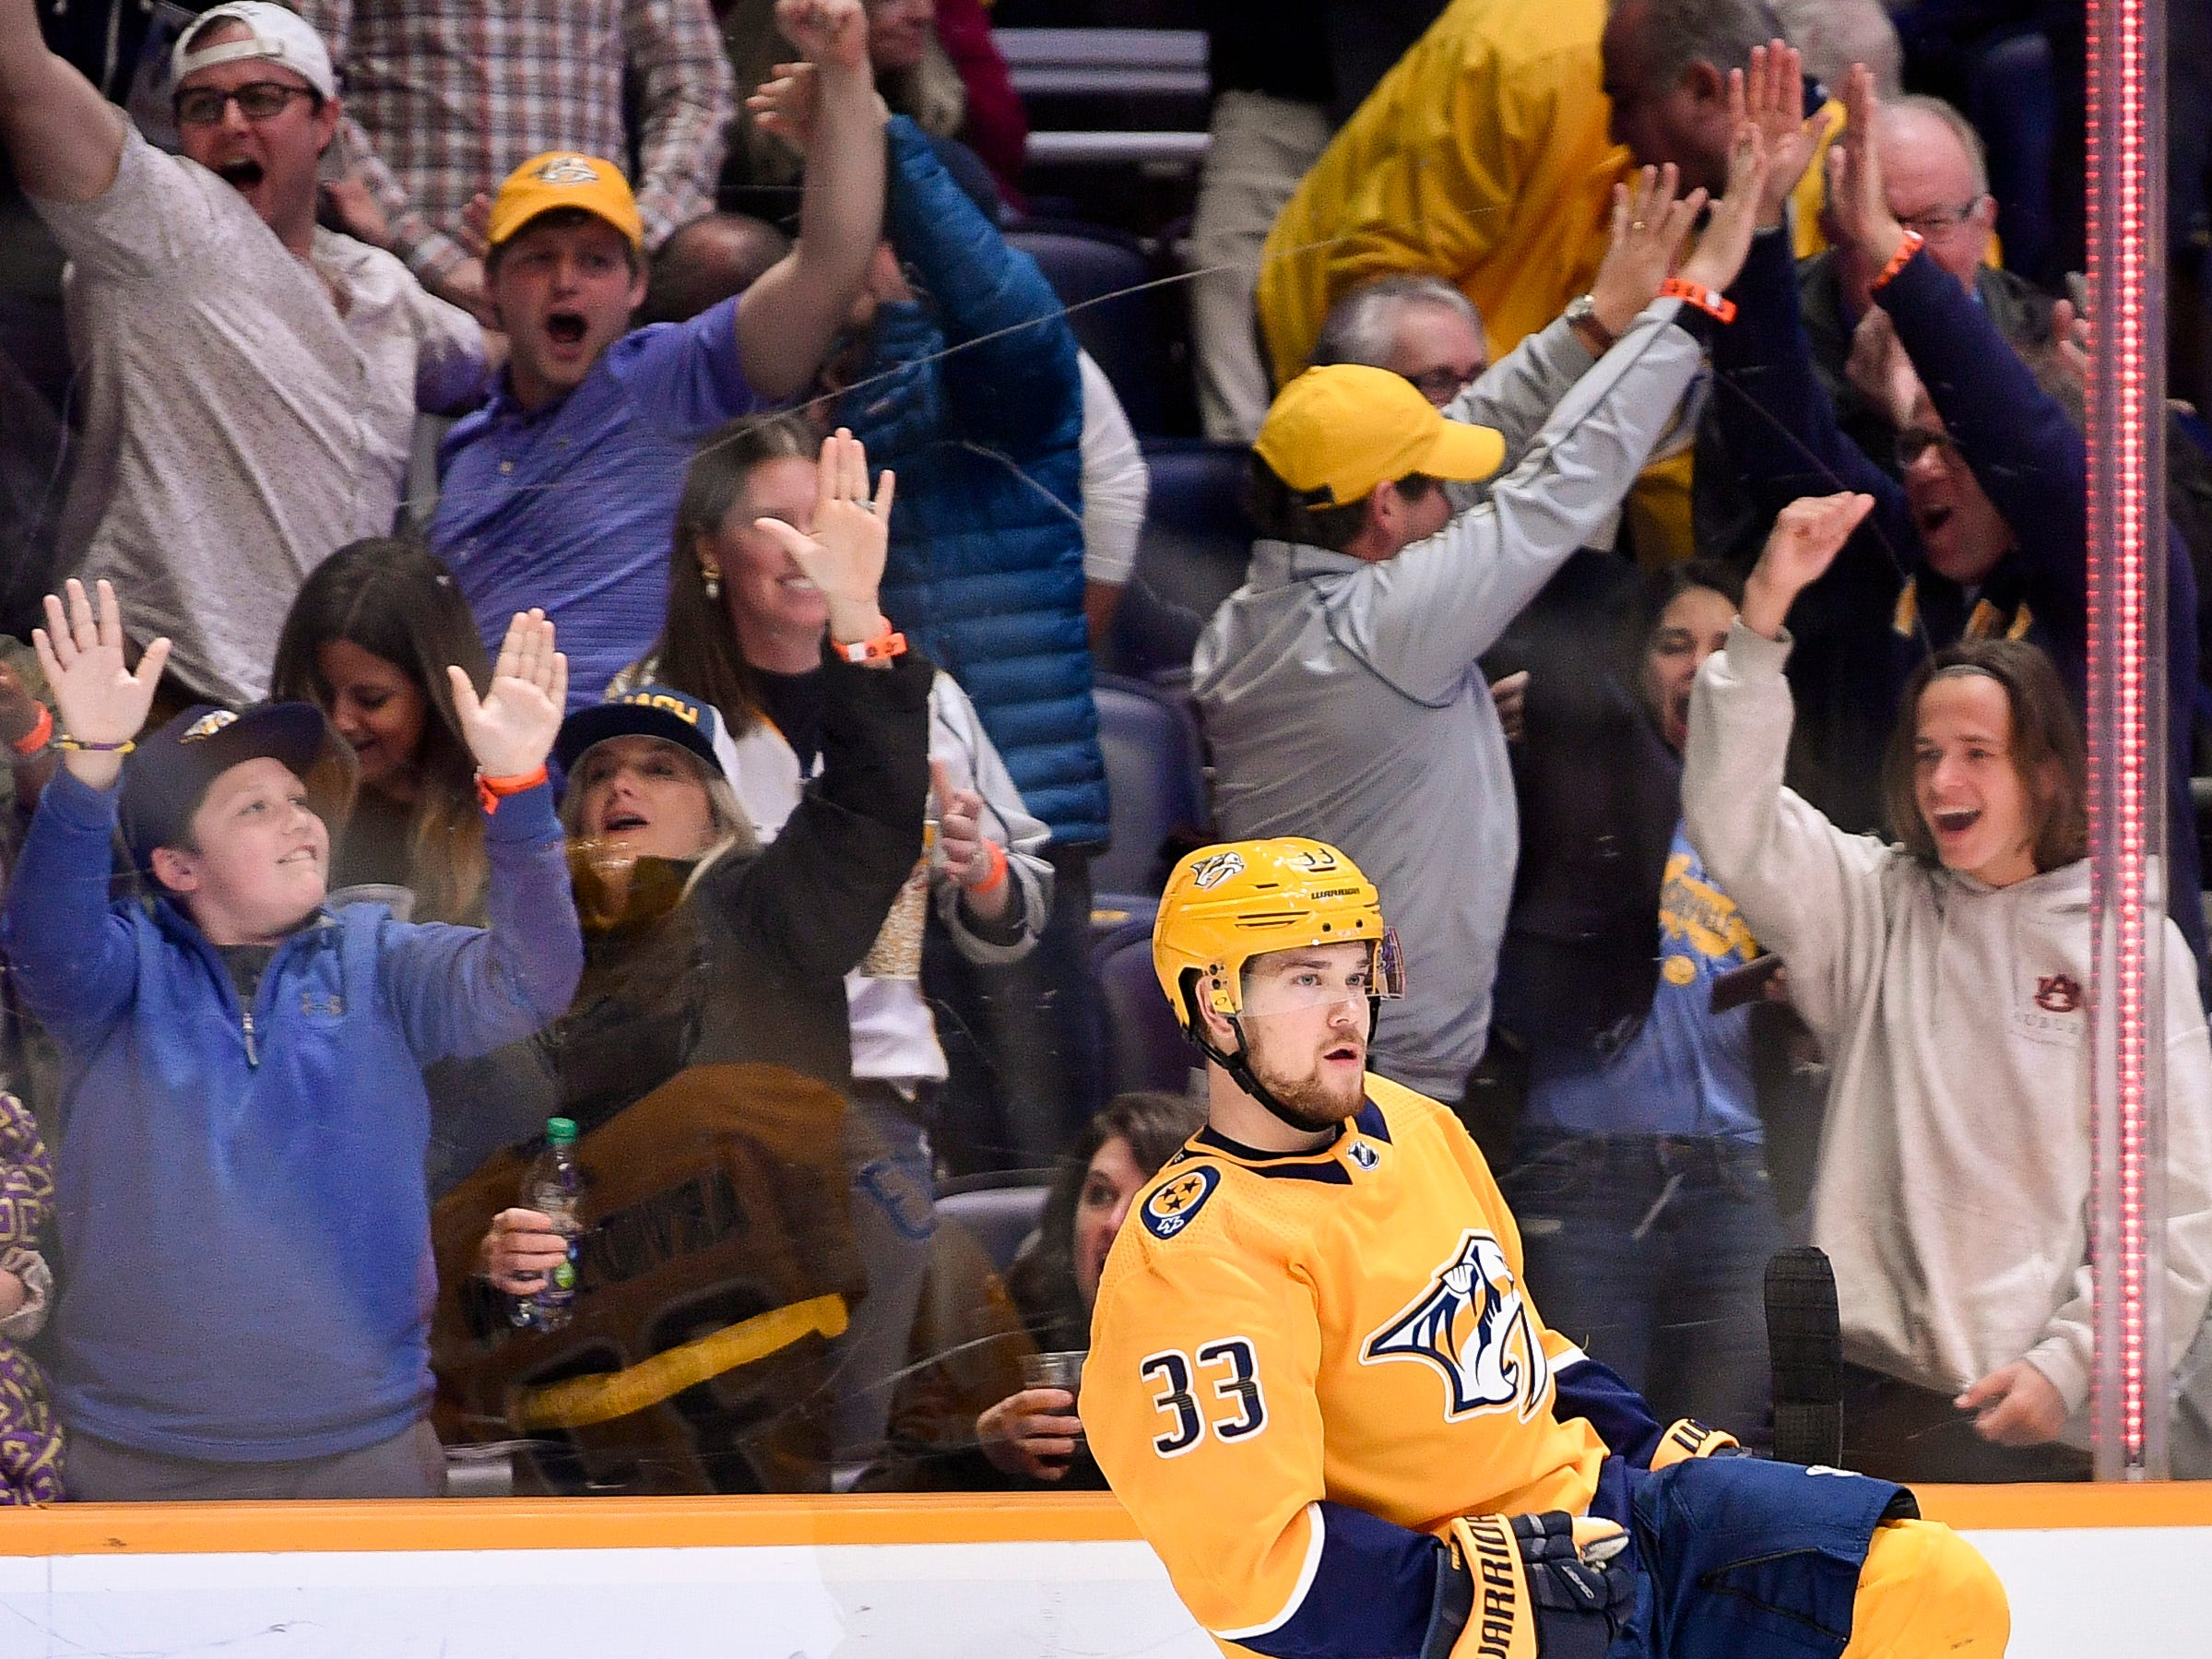 Nashville Predators right wing Viktor Arvidsson (33) reacts to scoring a goal against the Columbus Blue Jackets during the first period at Bridgestone Arena in Nashville, Tenn., Saturday, March 30, 2019.